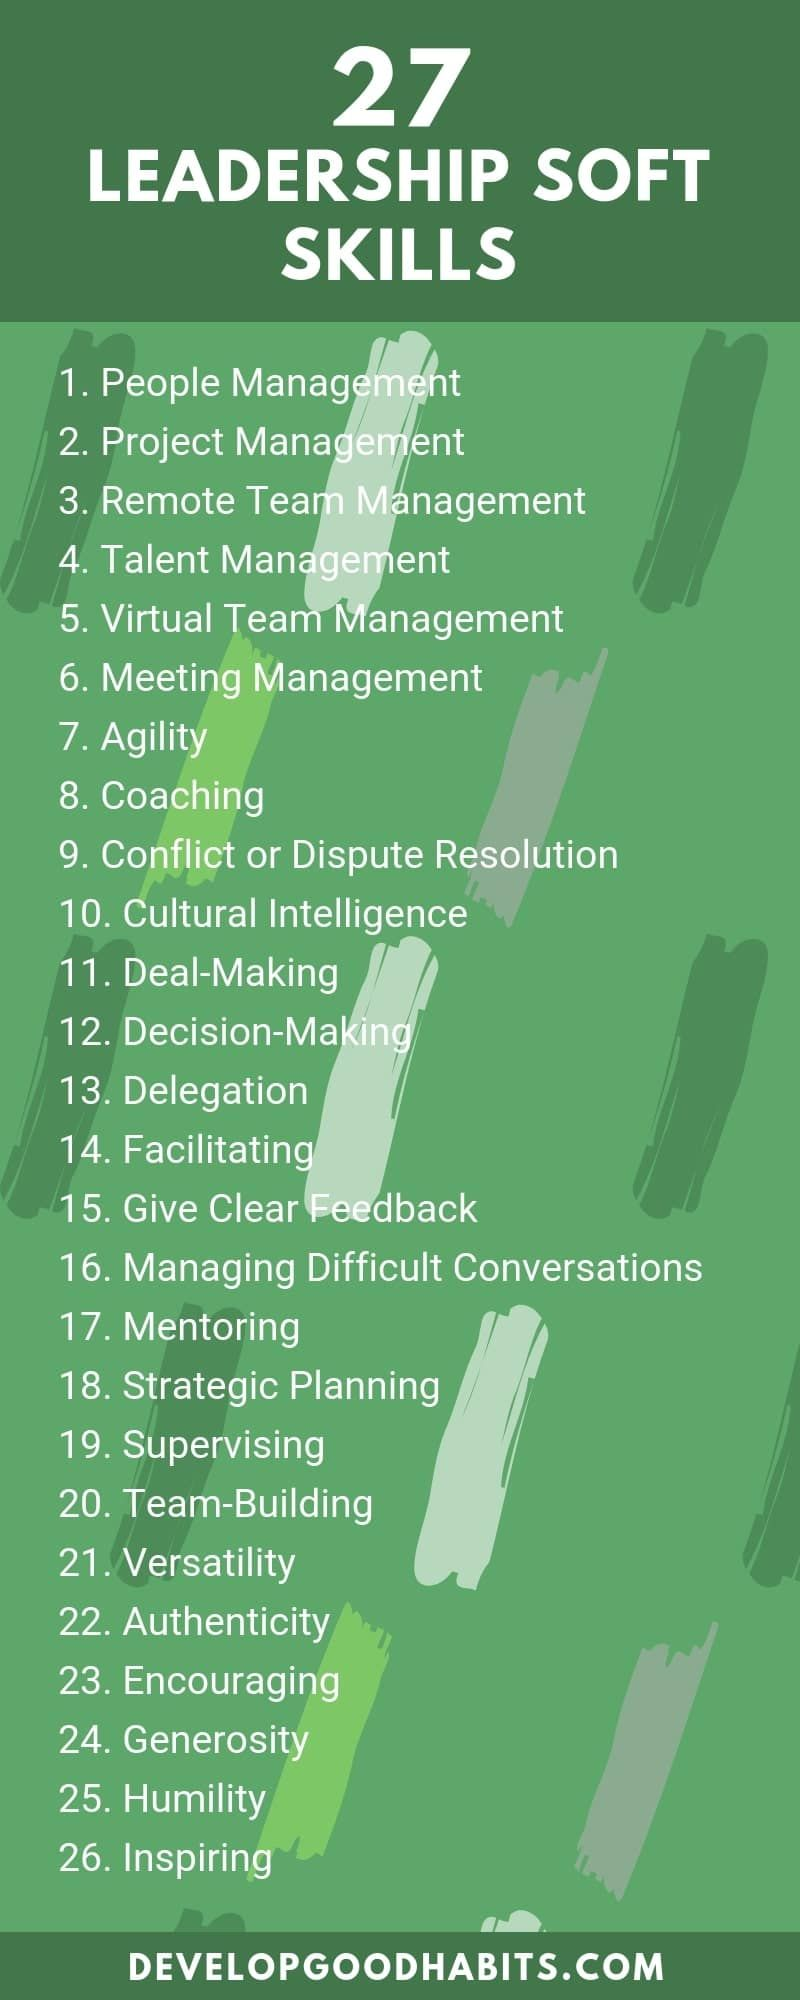 135 Soft Skills List to Stand Out on a Resume or Job Application